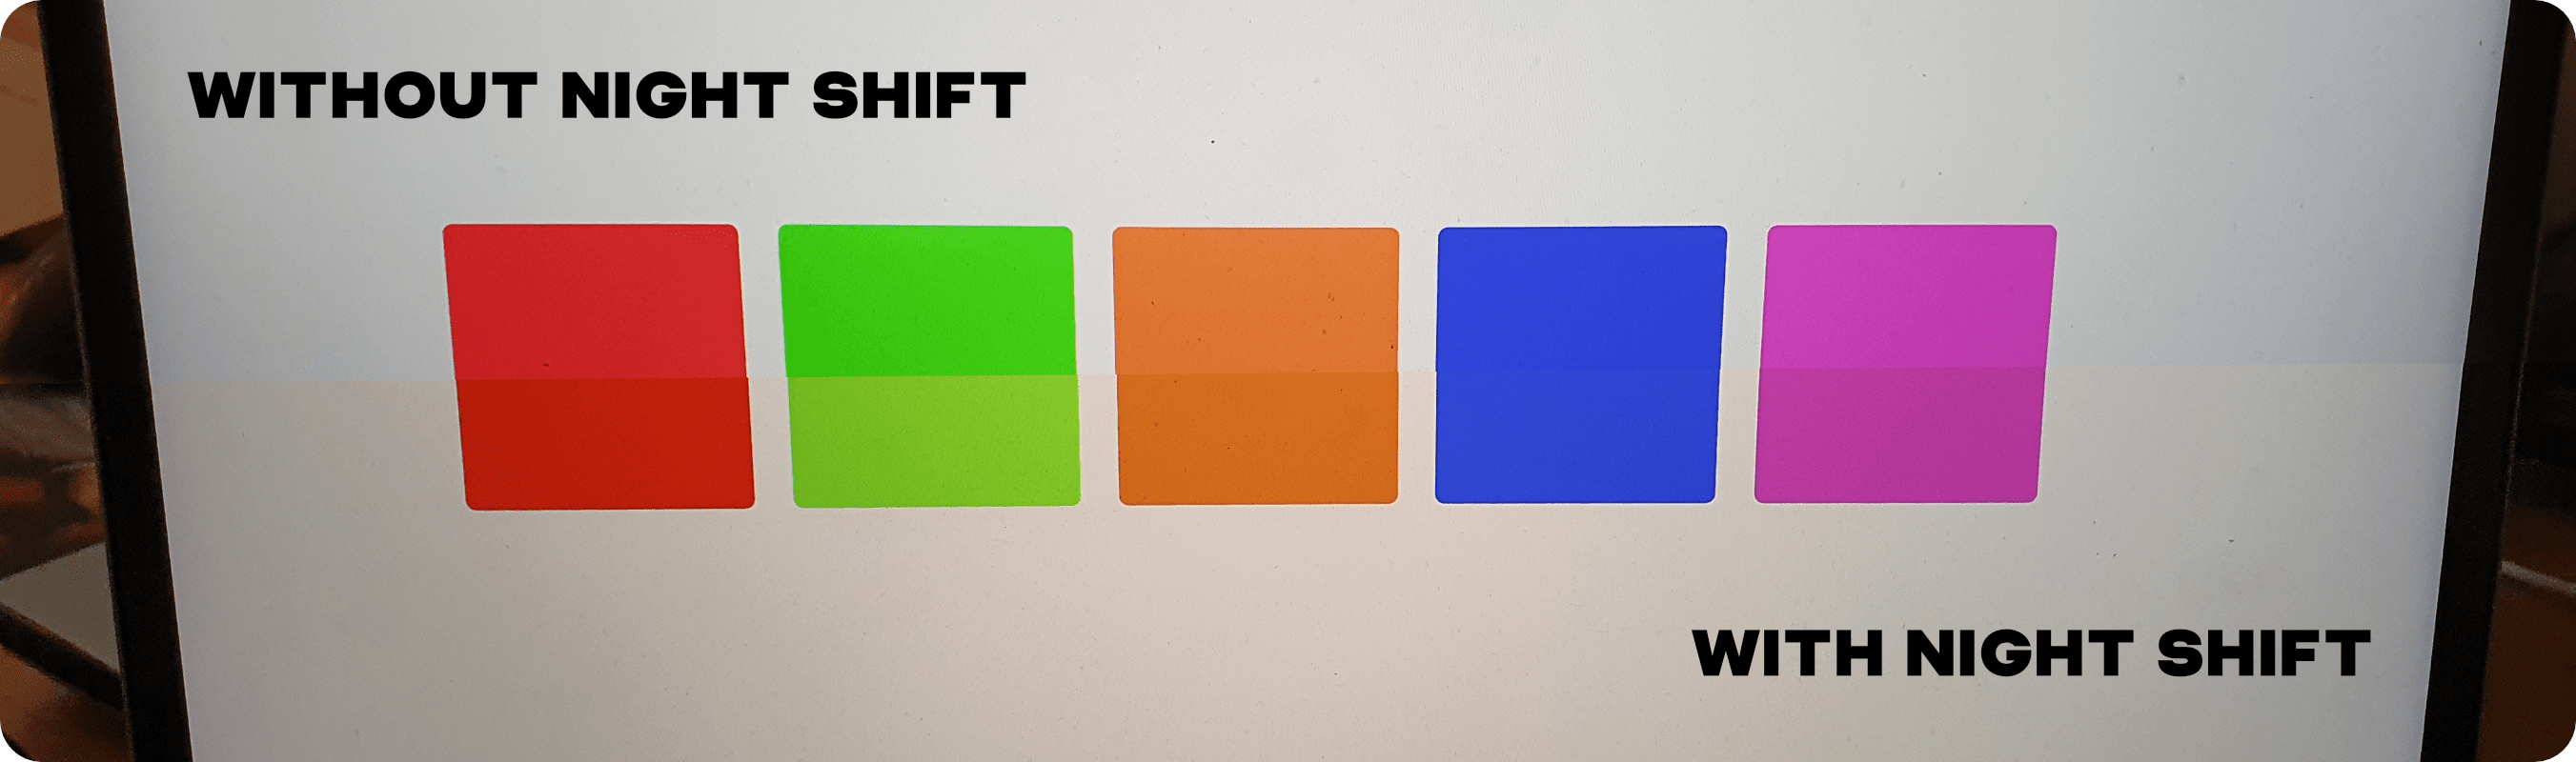 A comparison of colors with Night Shift on and off